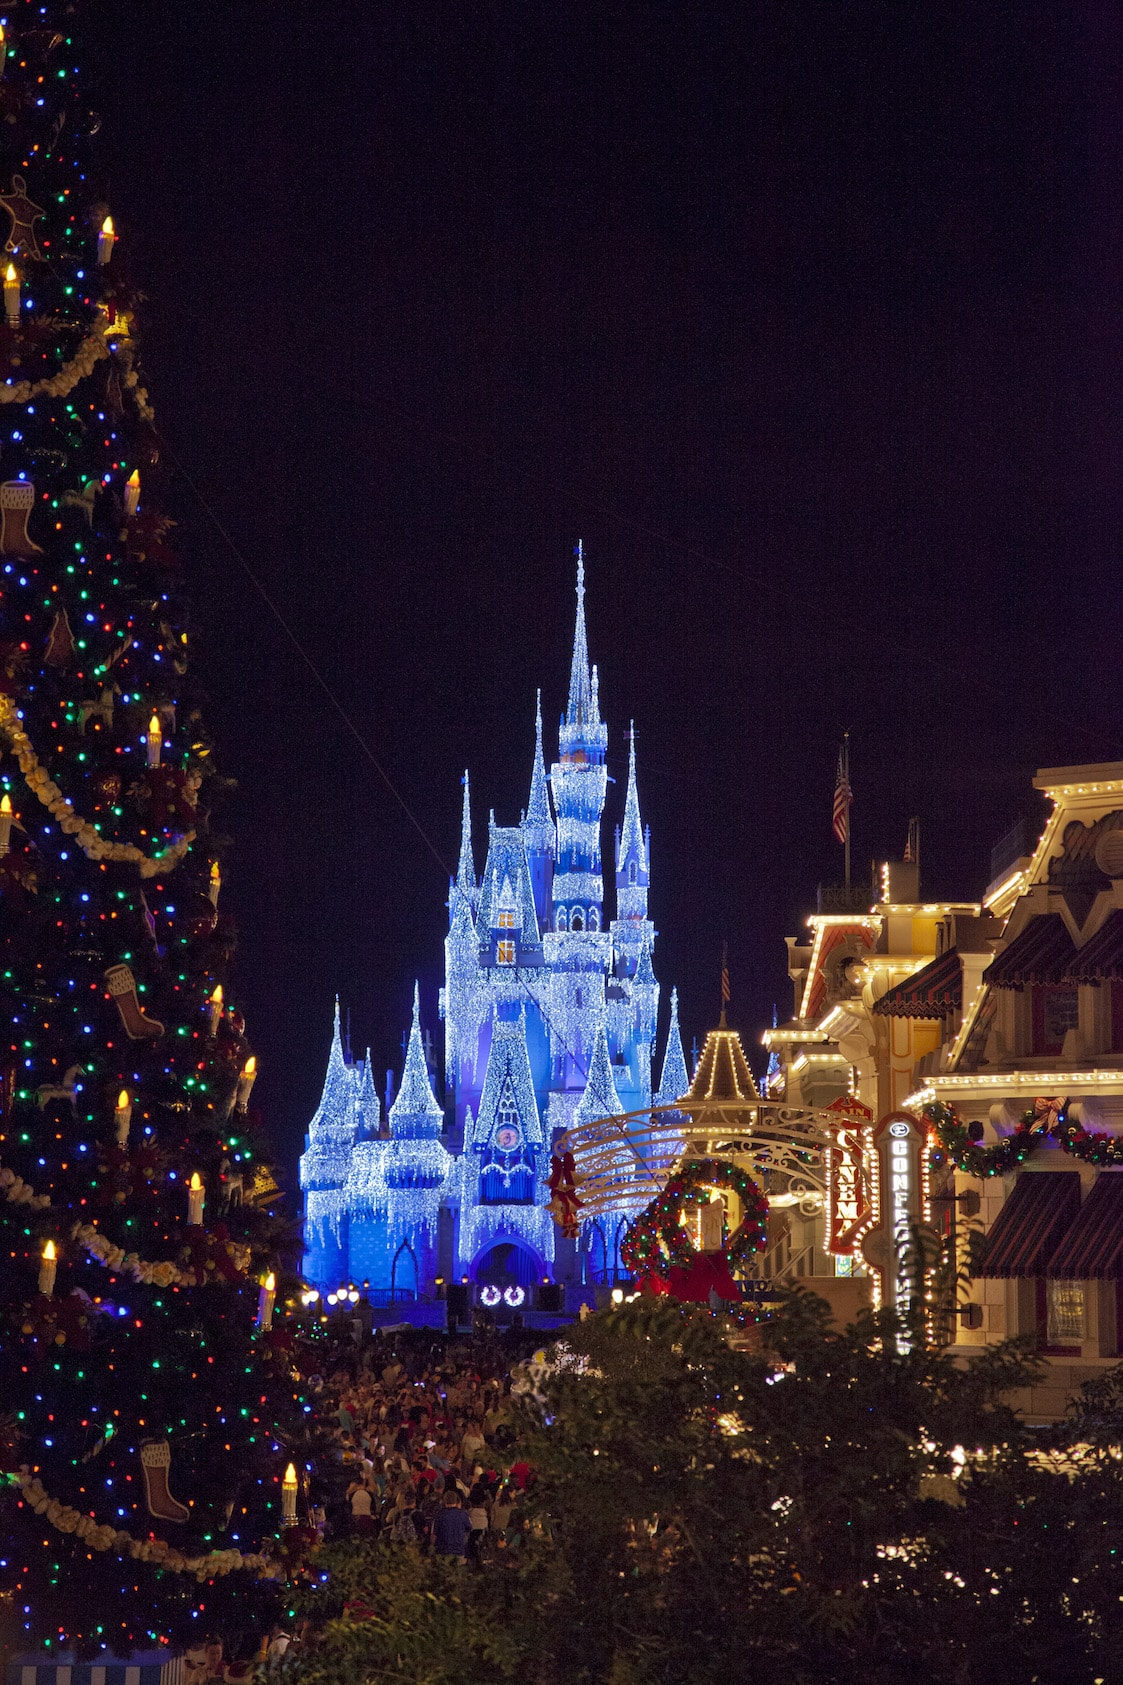 Cinderella Castle with Main Street USA and Christmas Tree Magic Kingdom at Night